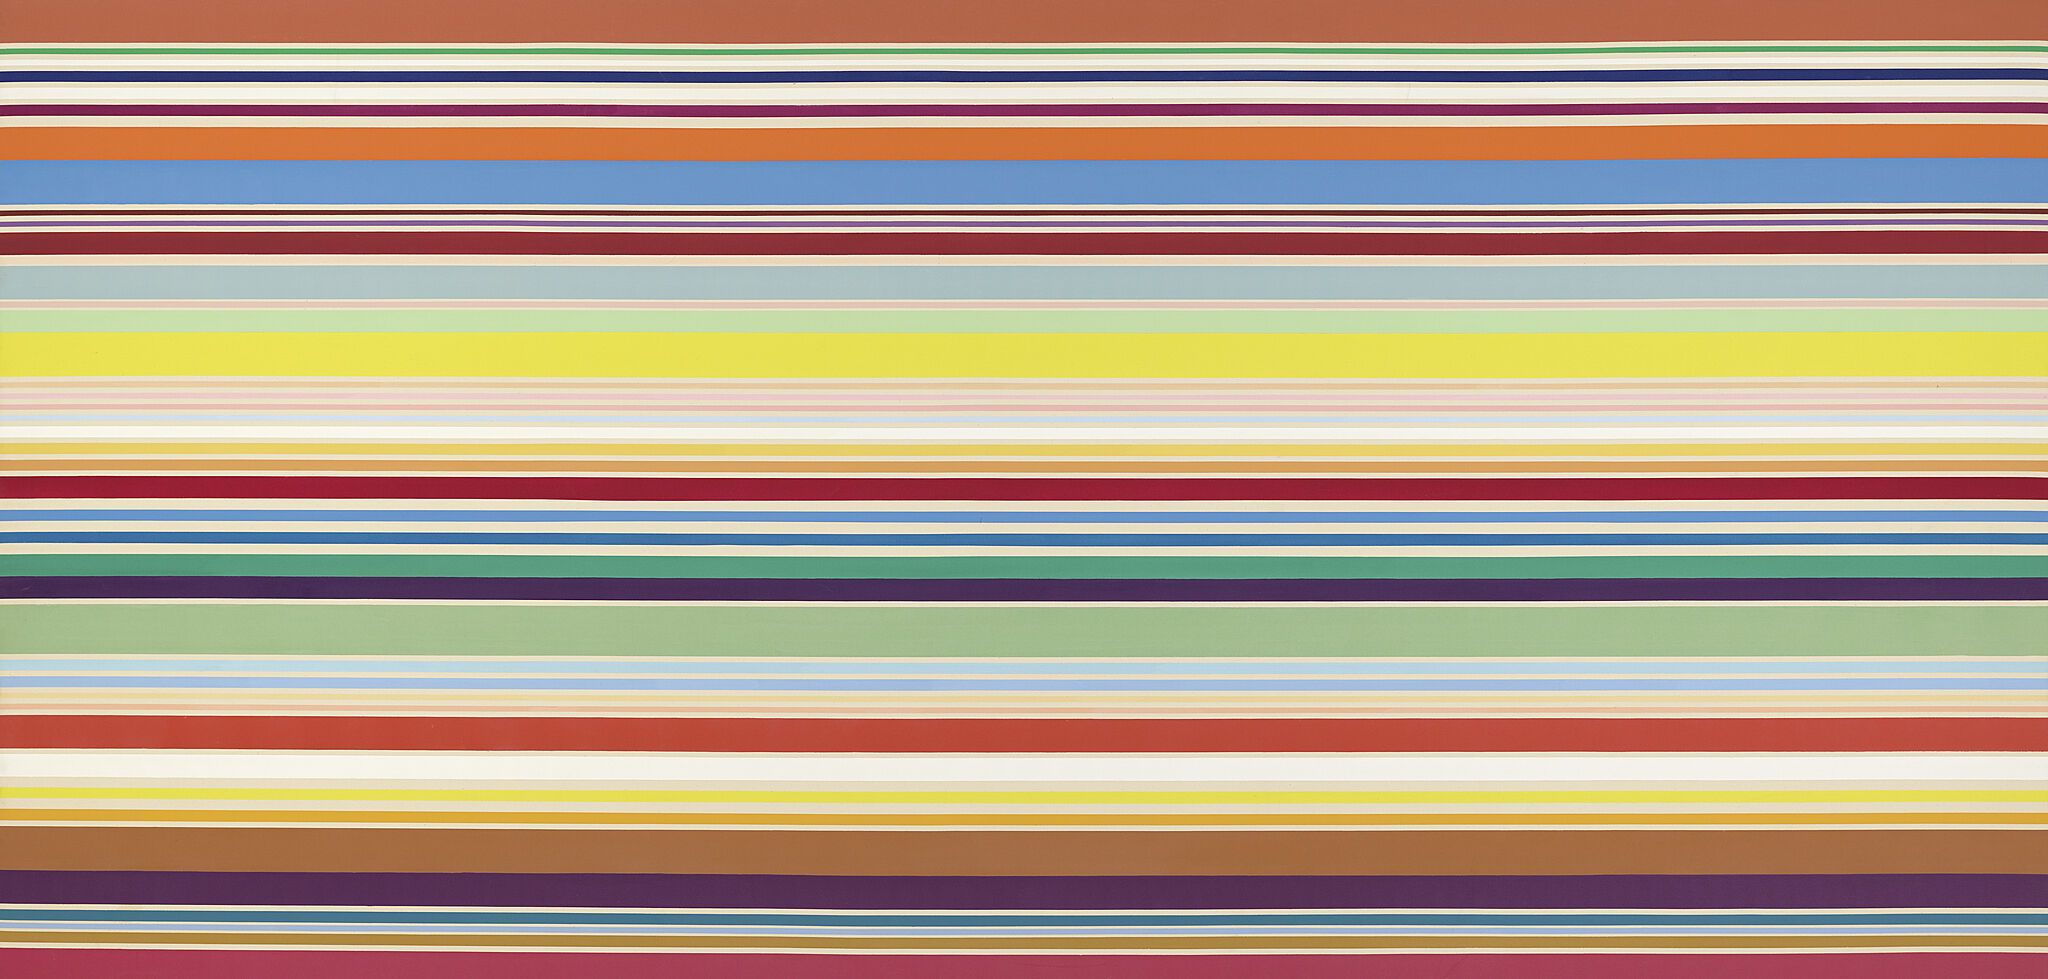 A painting of multicolored horizontal stripes.